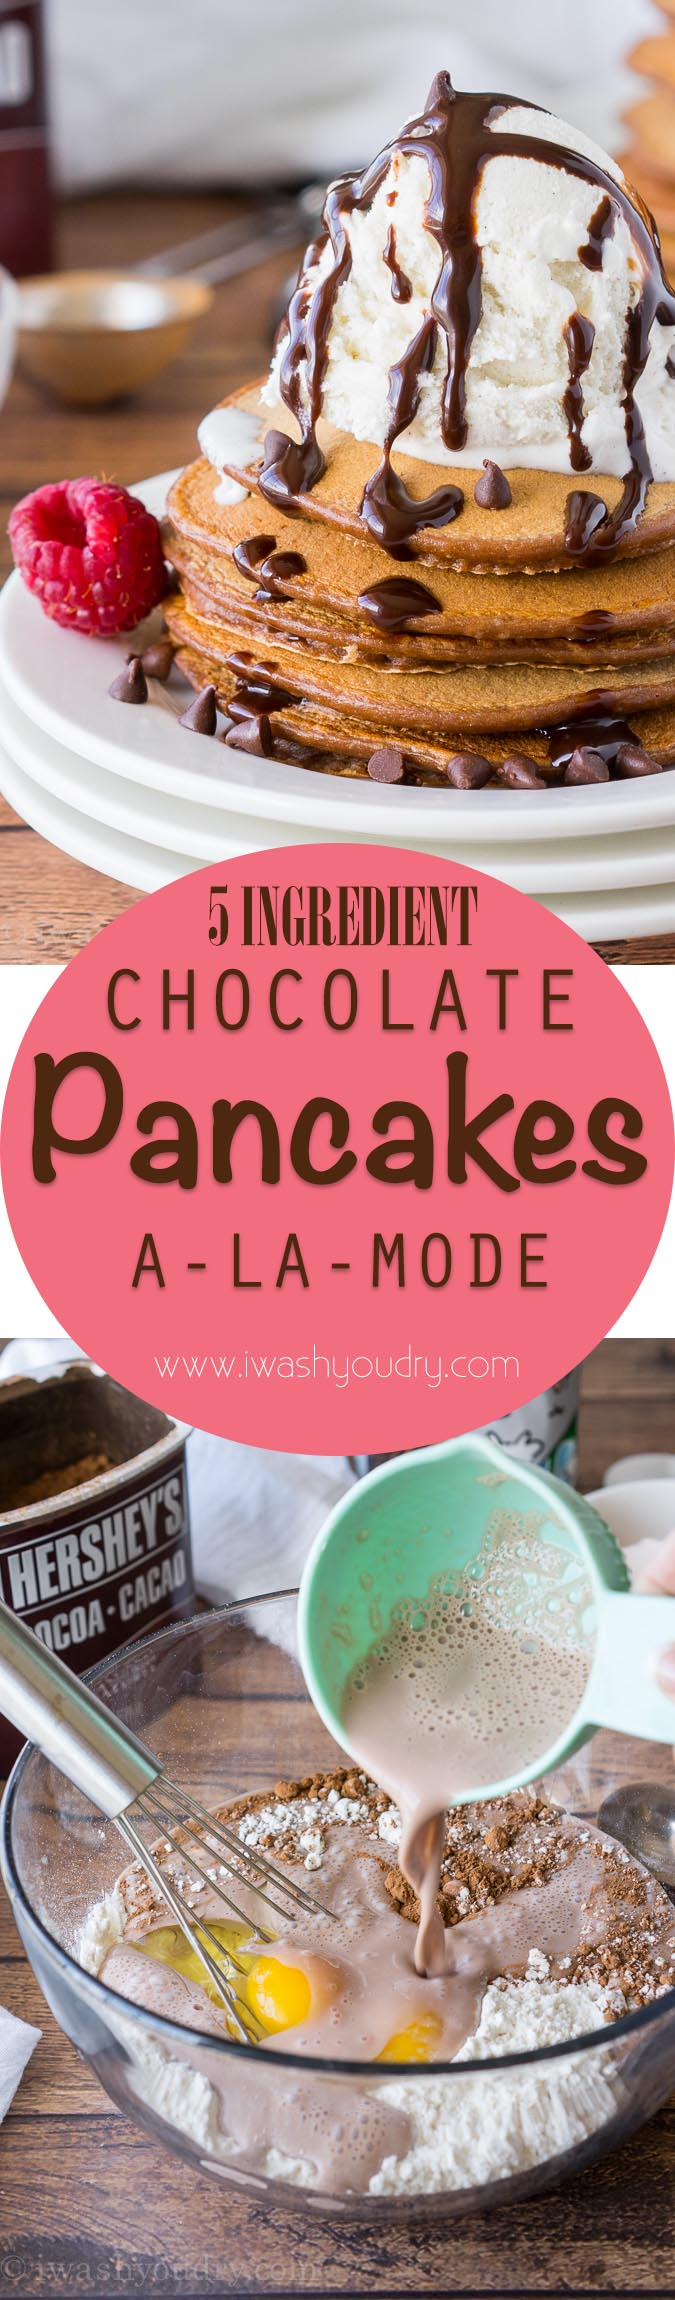 These Chocolate Pancakes are just a few simple ingredients and are made extra special with a scoop of vanilla ice cream and drizzle of chocolate syrup!